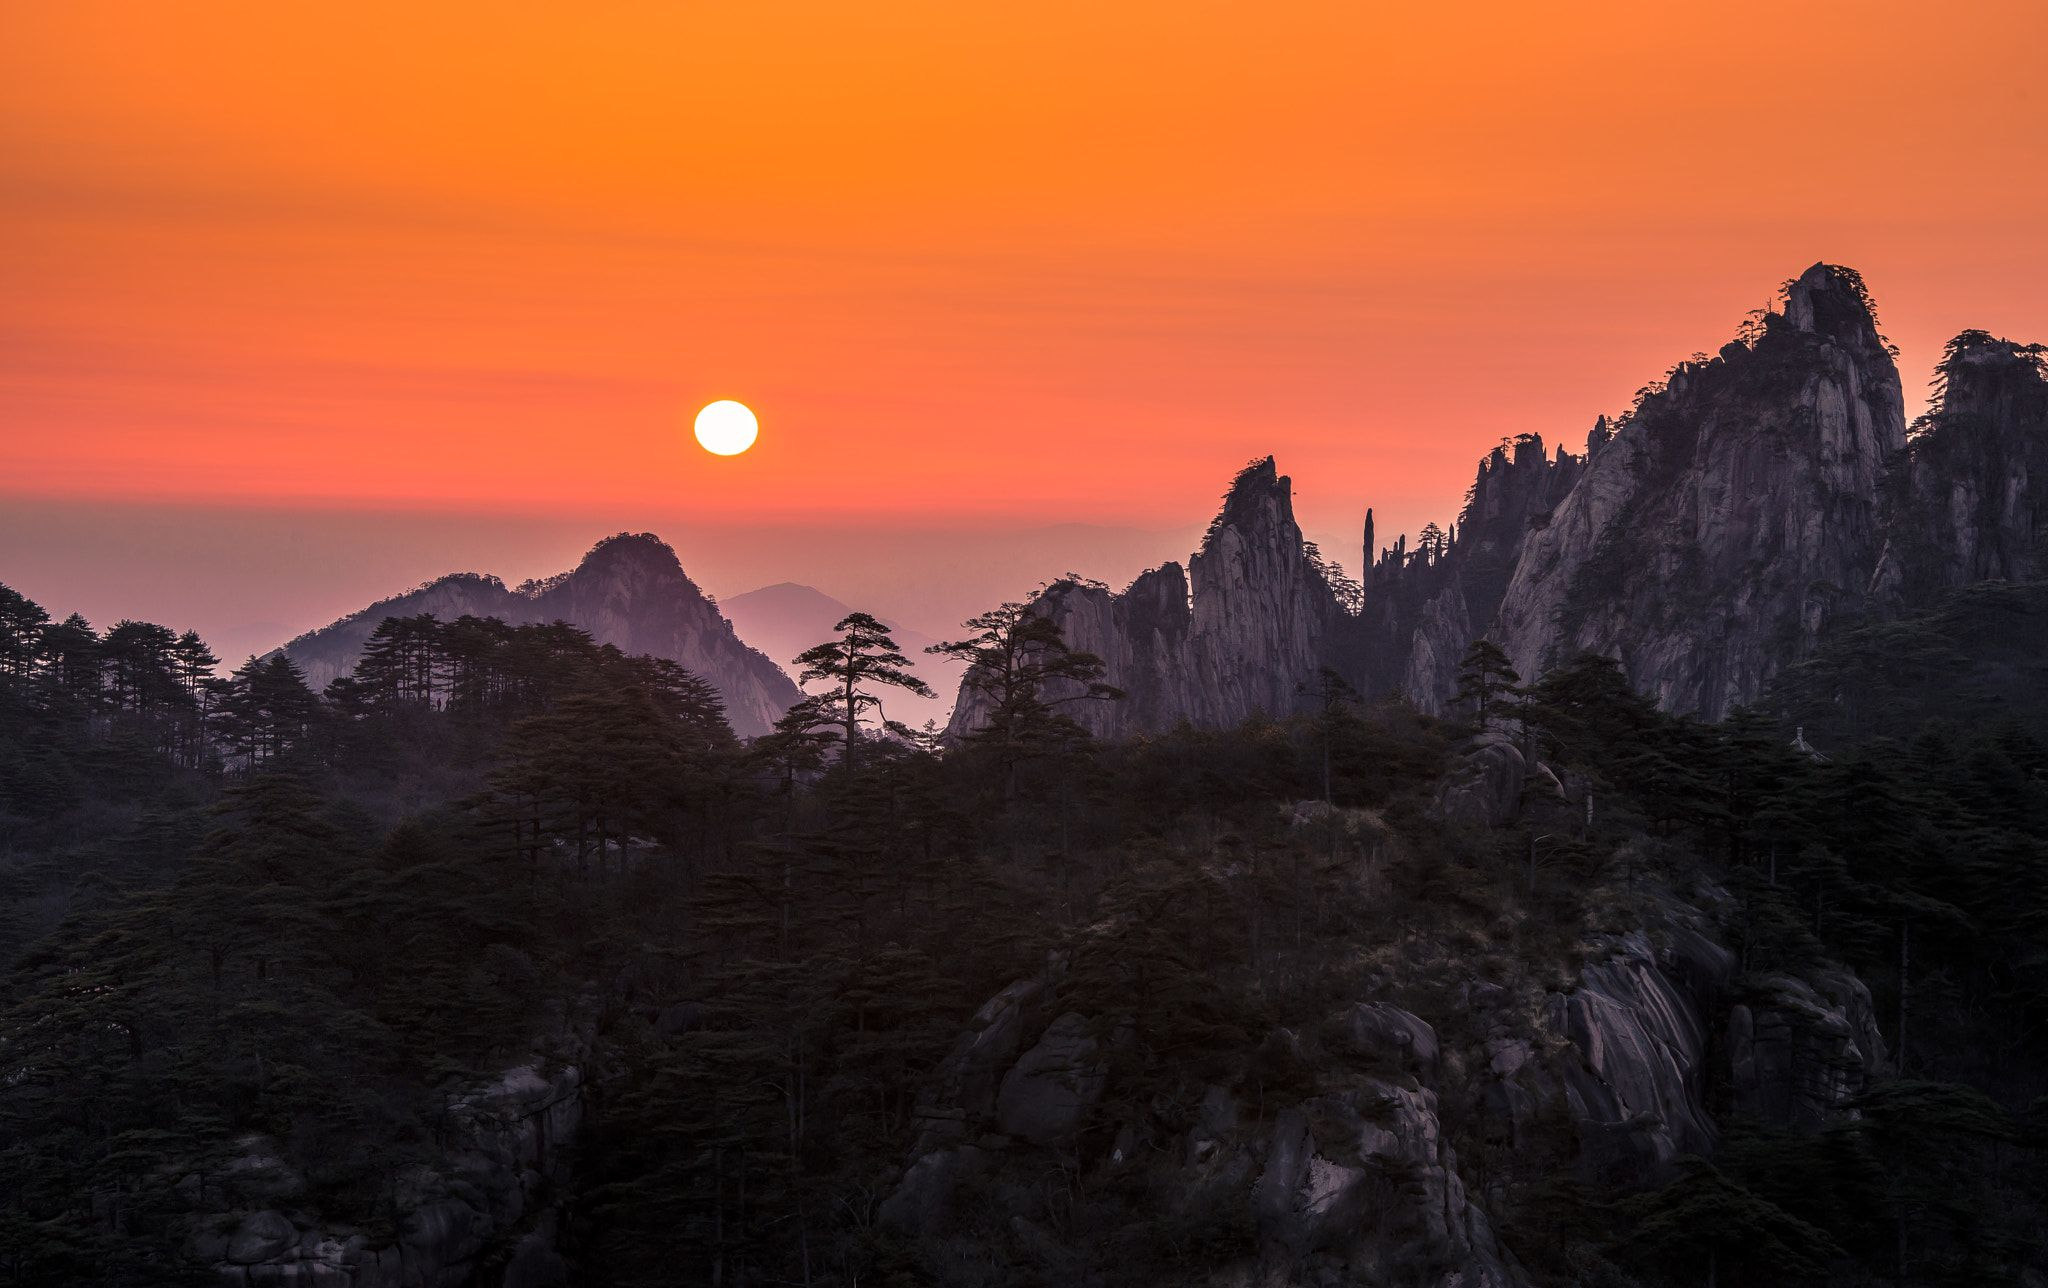 """Sunrise at Huangshan - Huangshan is known for its sunrises, pine trees, """"strangely jutting granite peaks"""", and views of clouds touching the mountainsides. The Huangshan mountain range has many peaks, some more than 1,000 meters (3,250 feet) high."""